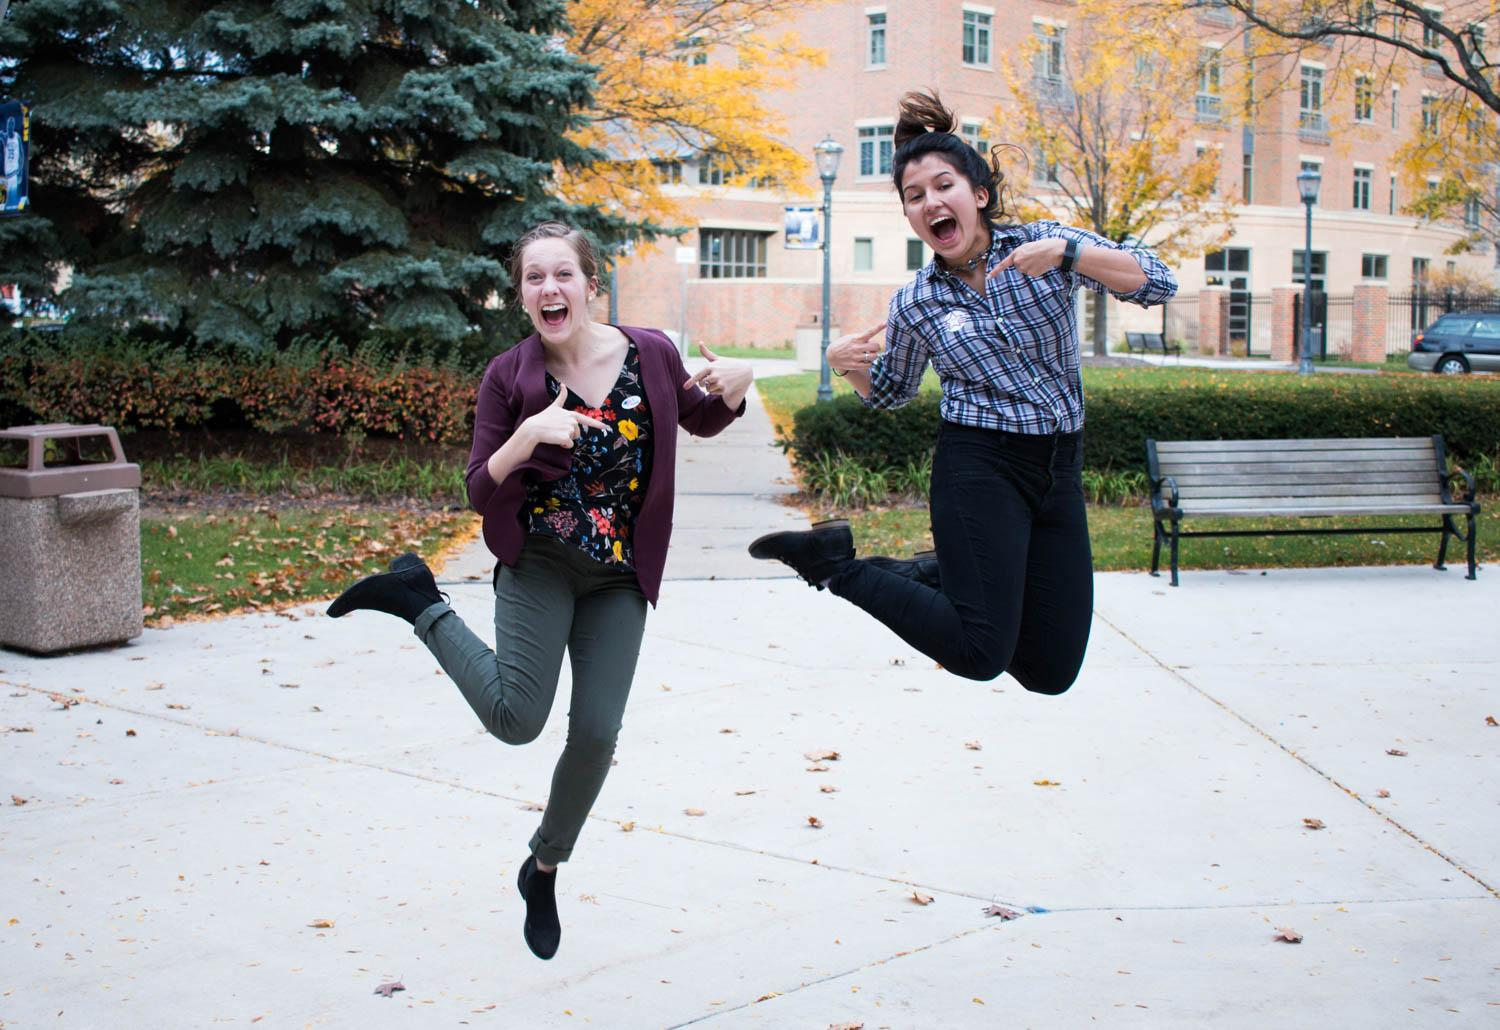 Rebecca Kaiser, left, a senior in the College of Arts & Sciences and Jacquelyn Carpenter, a junior in the College of Arts & Sciences, jump for joy after voting in their first presidential election. Photo by Meredith Gillepsie/meredith.gillepsie@marquette.edu